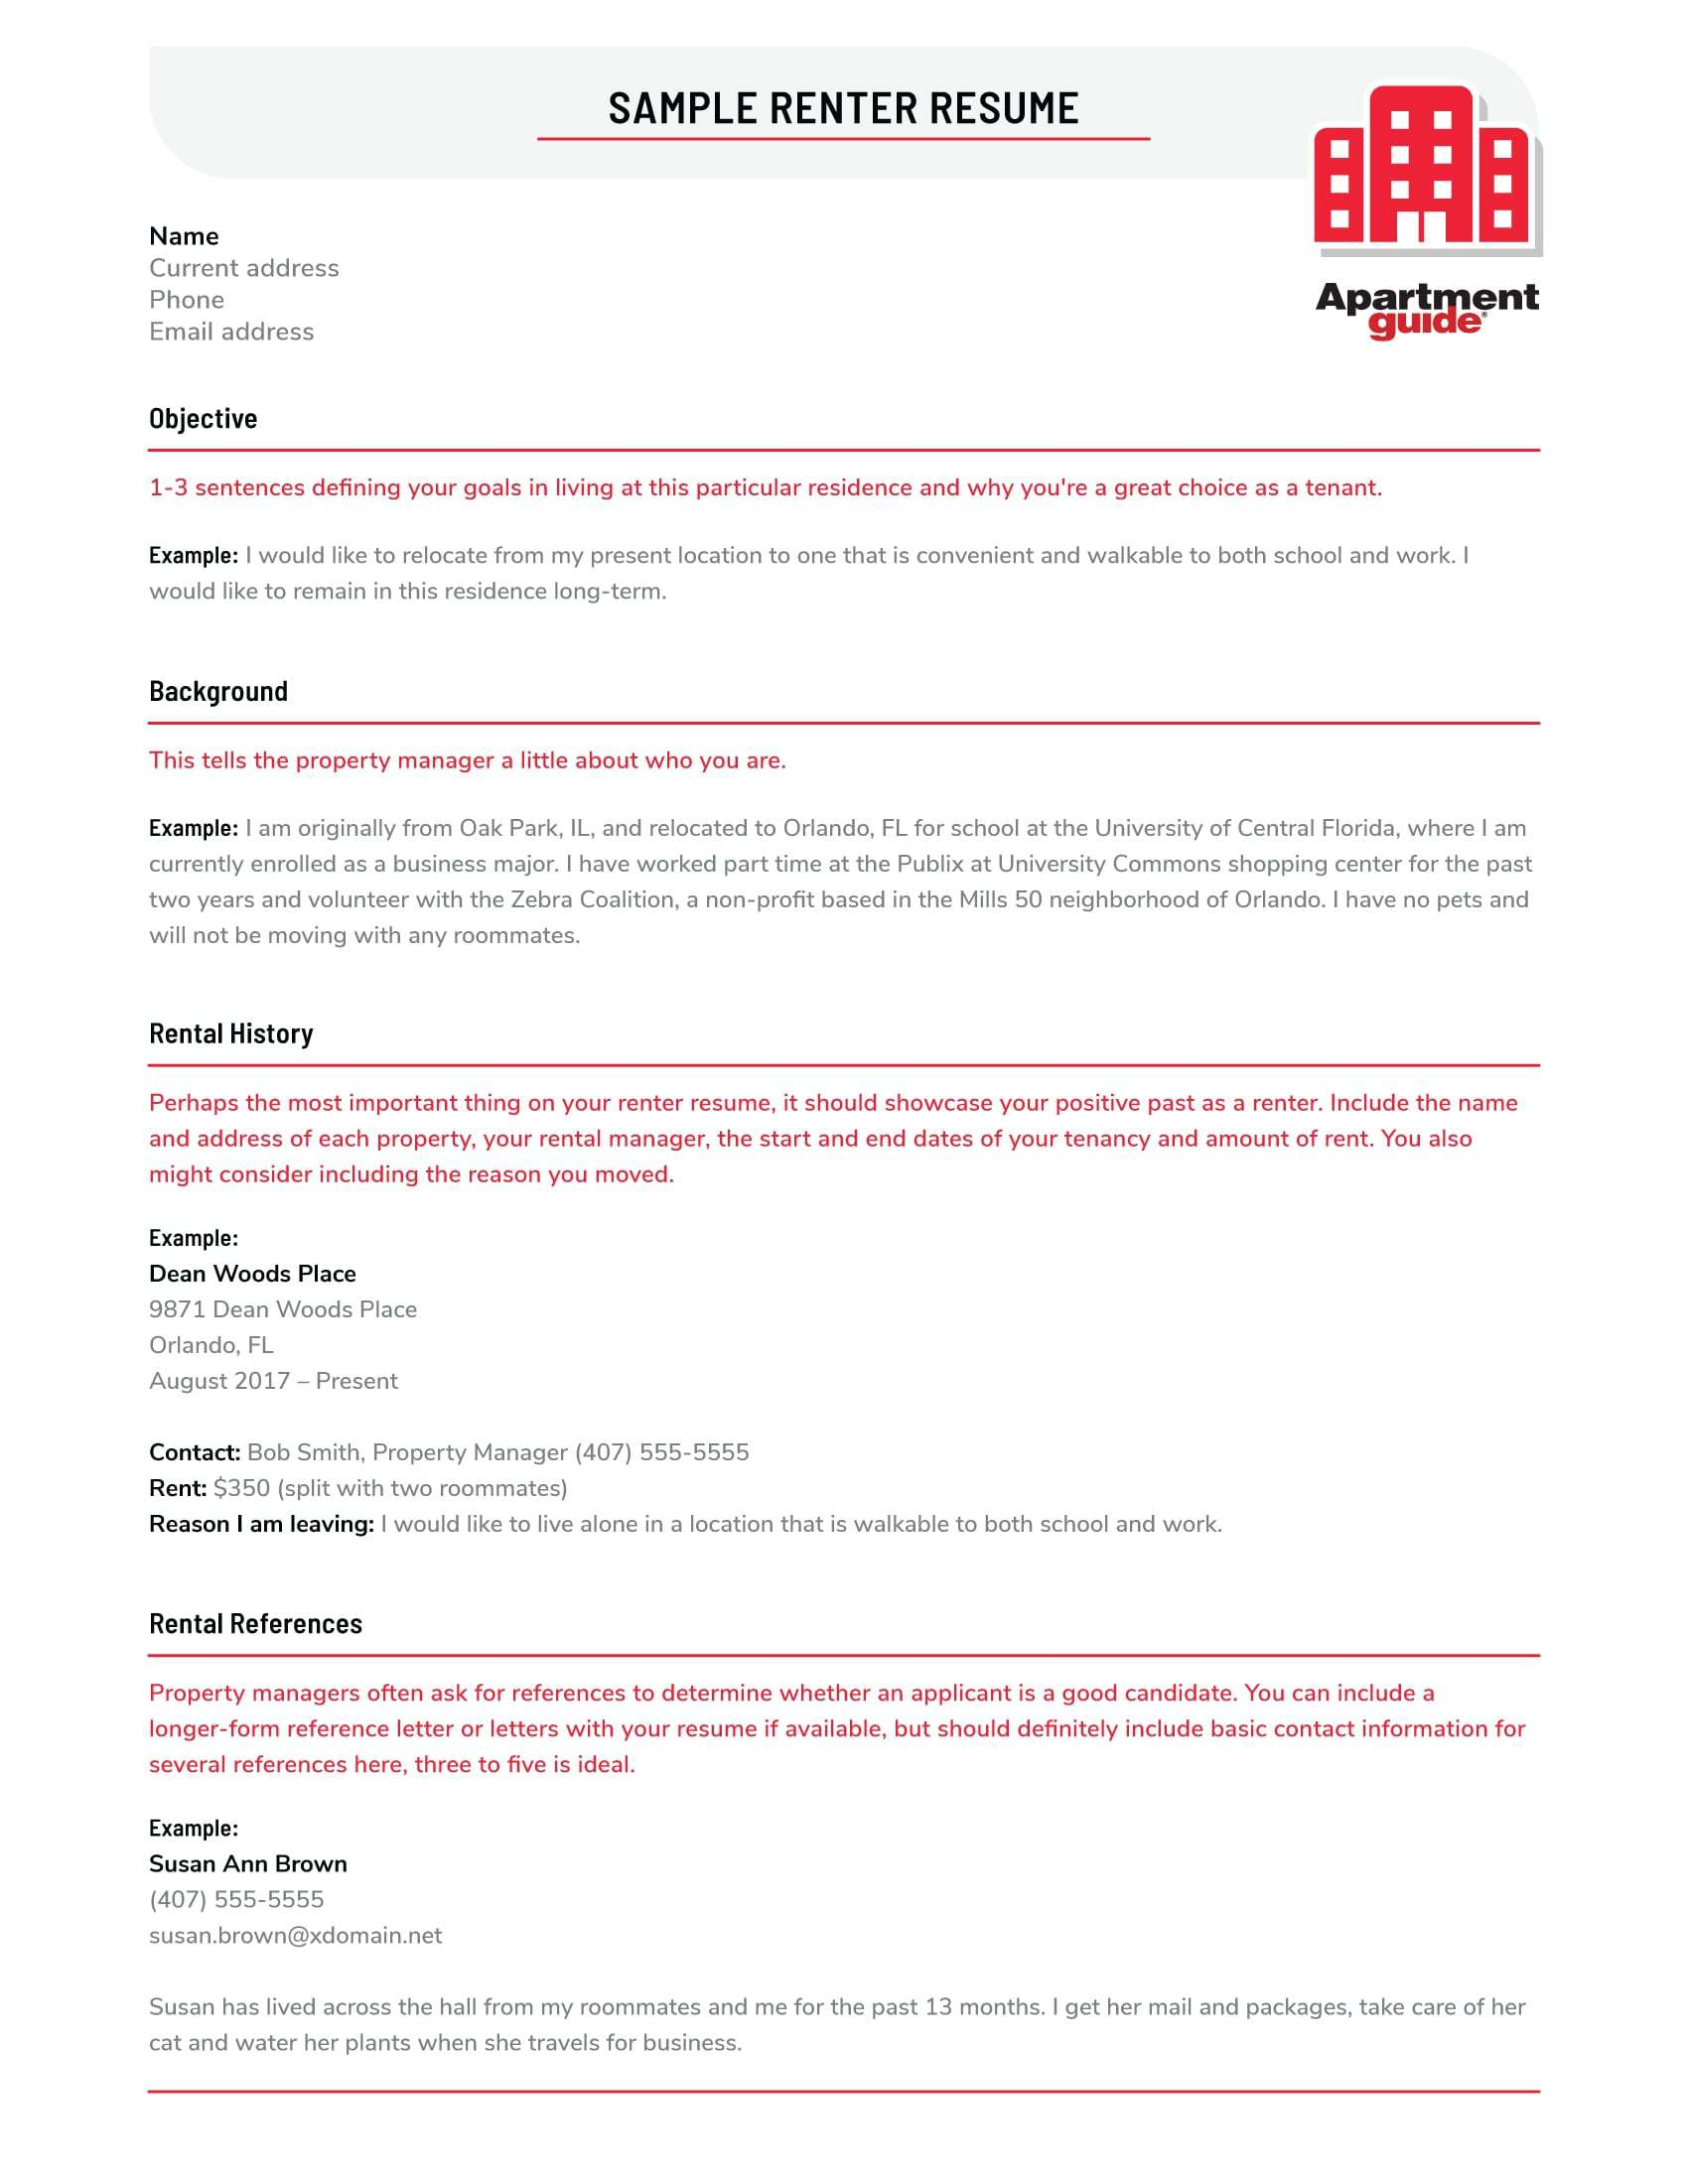 sample renter resume